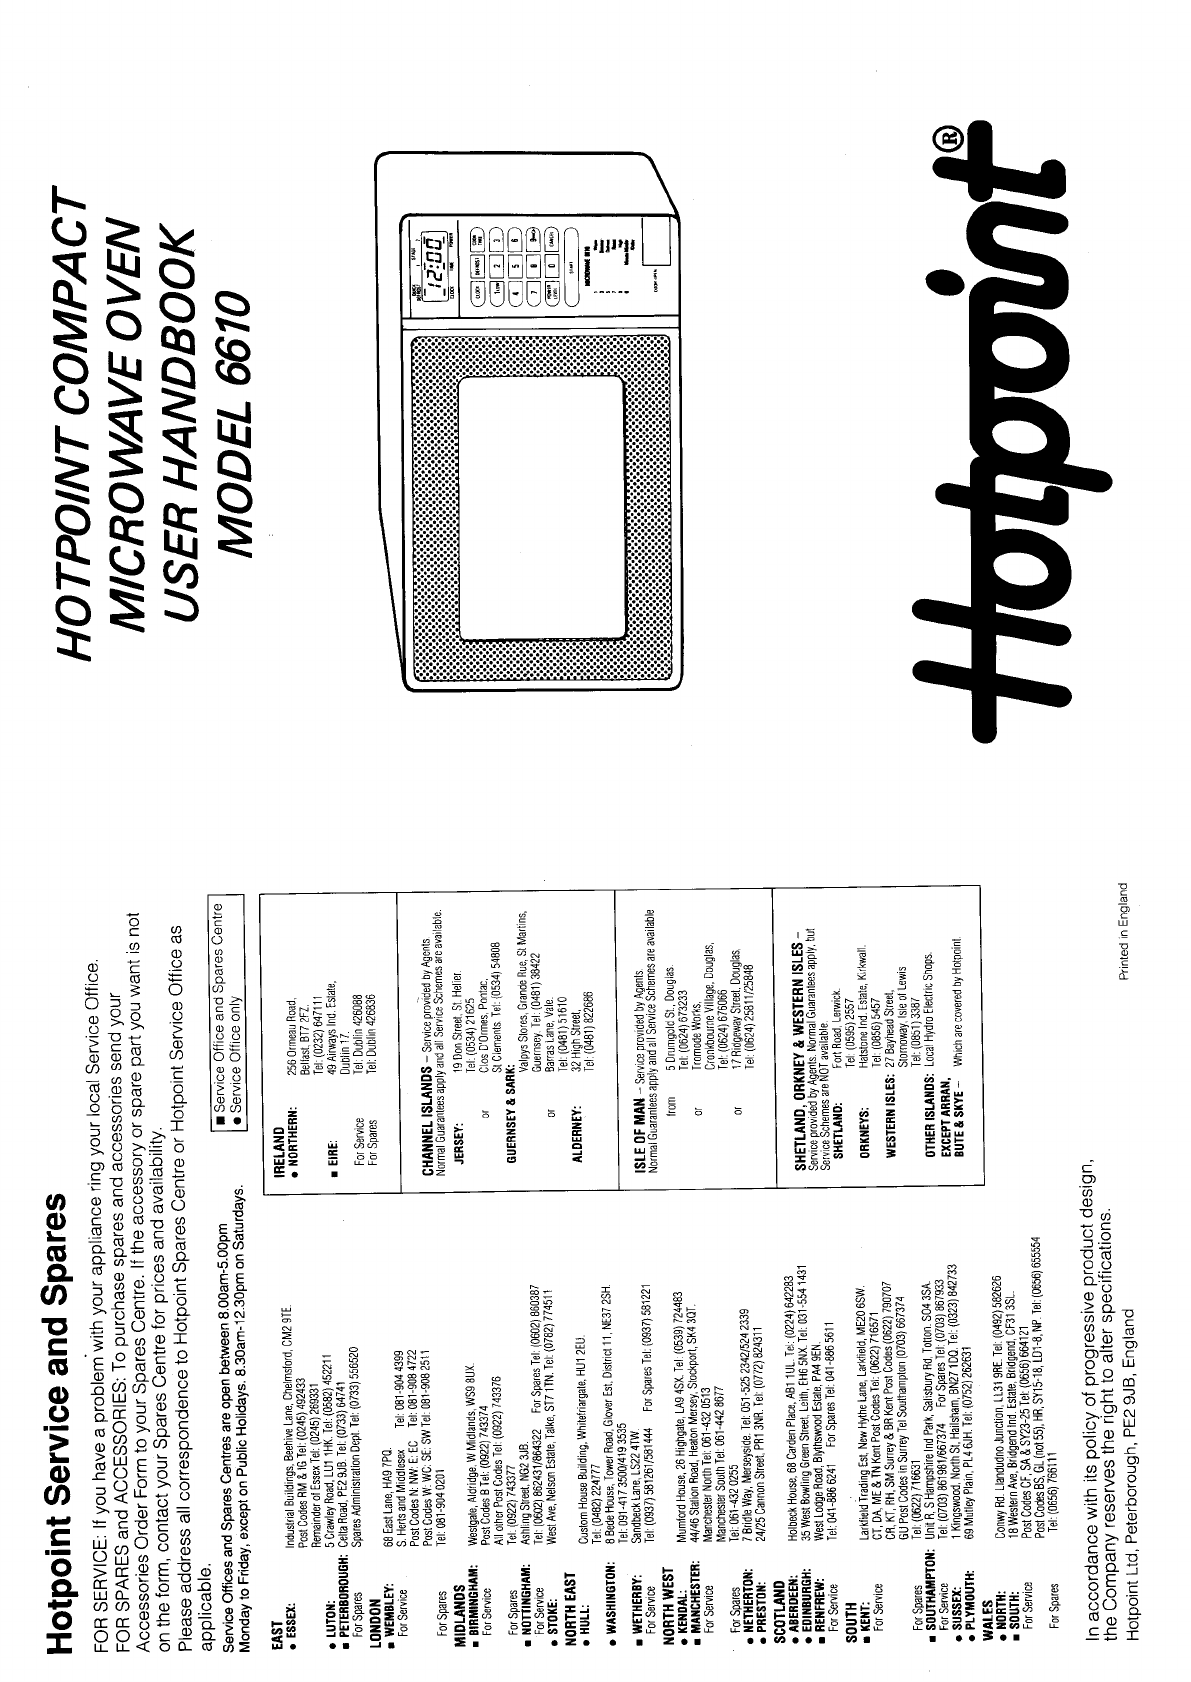 Hotpoint oven symbols glass dishes for meat dairy oven symbols and functions helping you understand the meaning and what it does hotpoint electric oven instructions for installation and use bs41x biocorpaavc